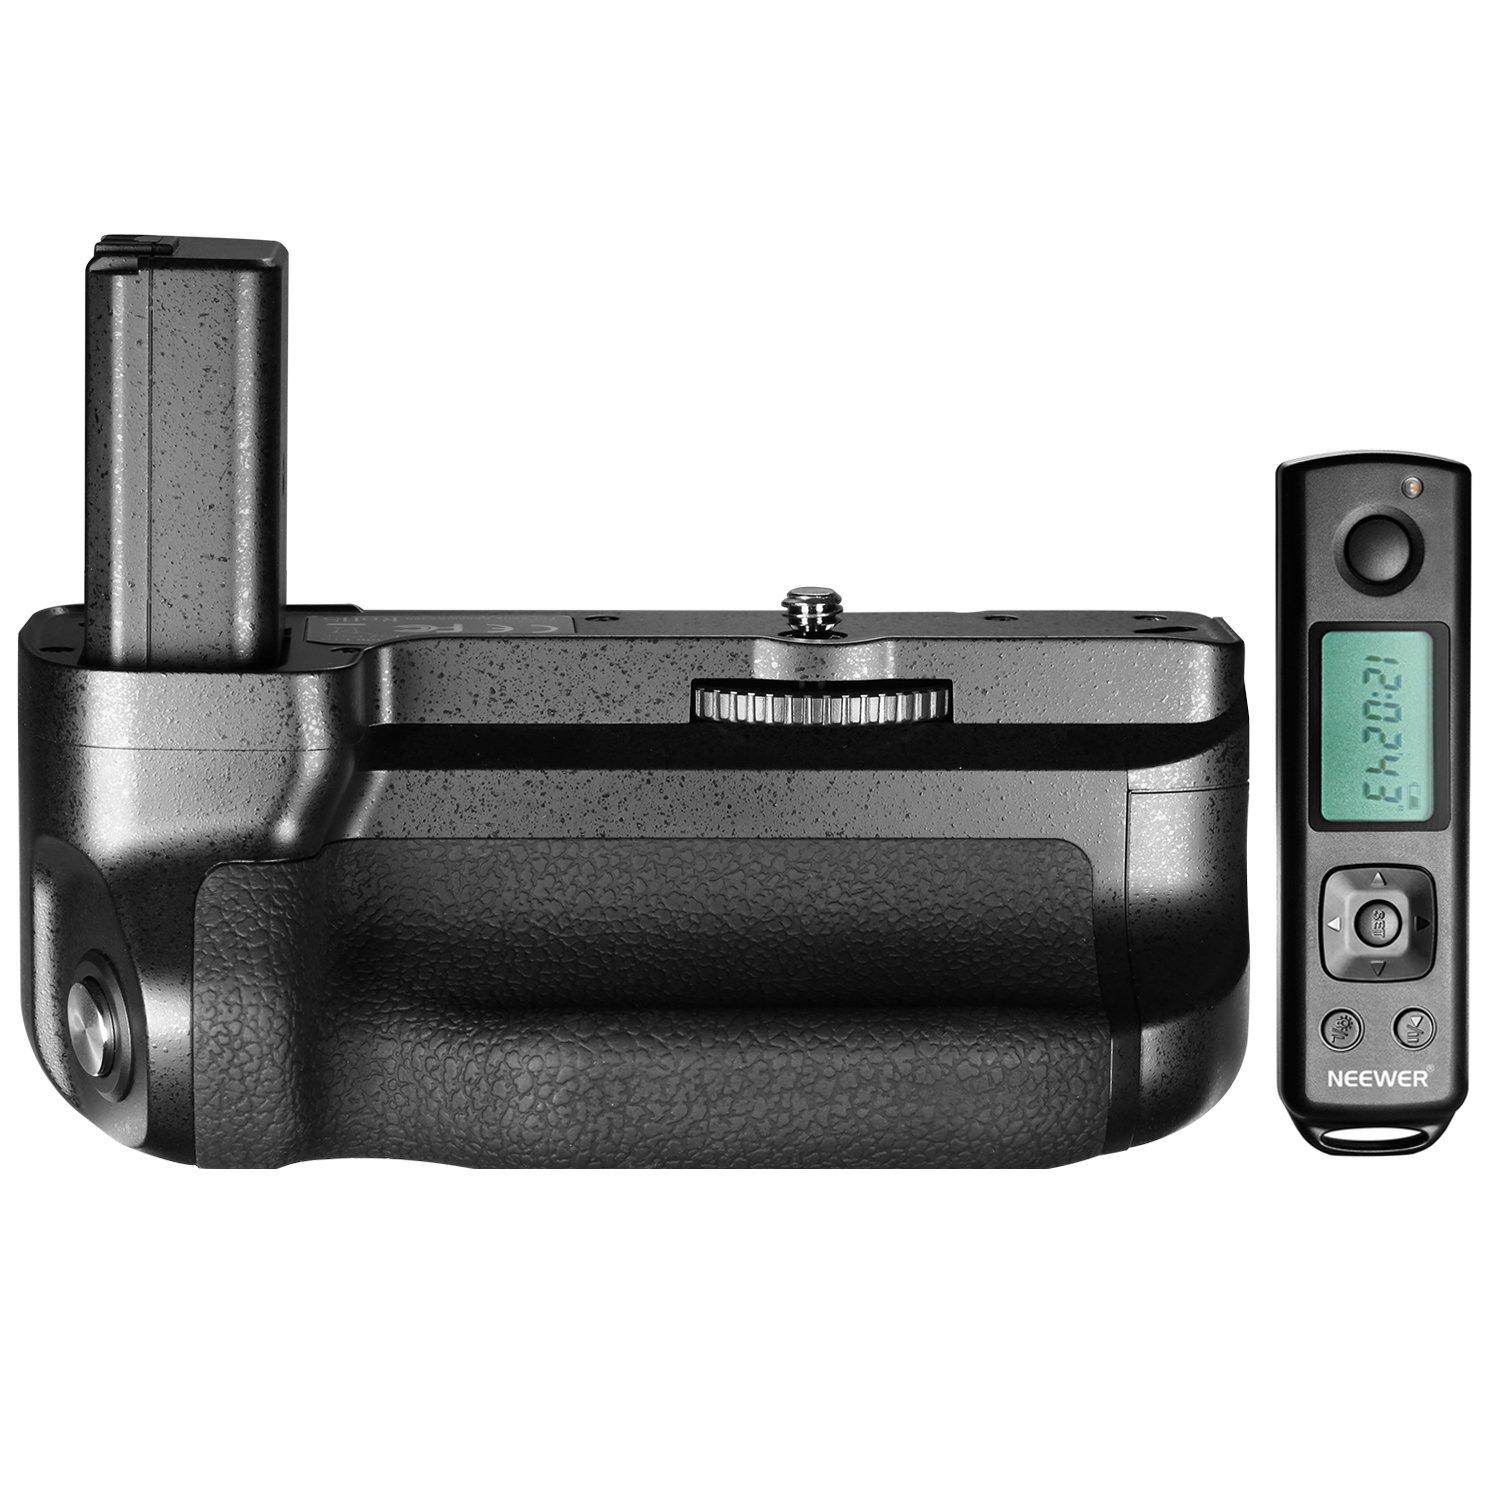 Neewer Grip   Control Remoto Para Sony A6500 Mirrorless